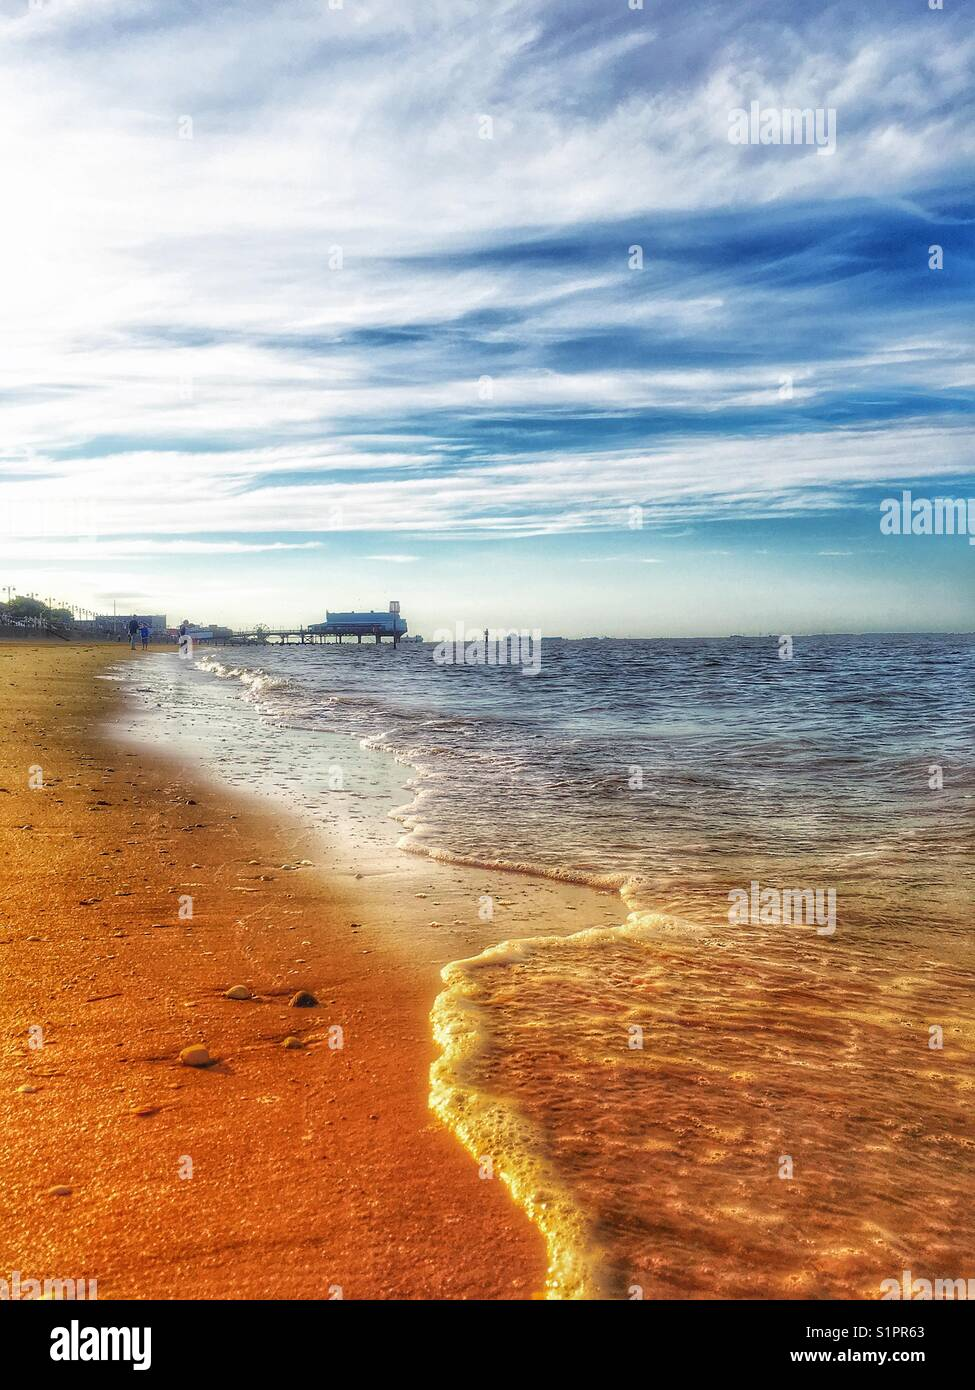 Surf along the beach at Cleethorpes UK at sunset. - Stock Image